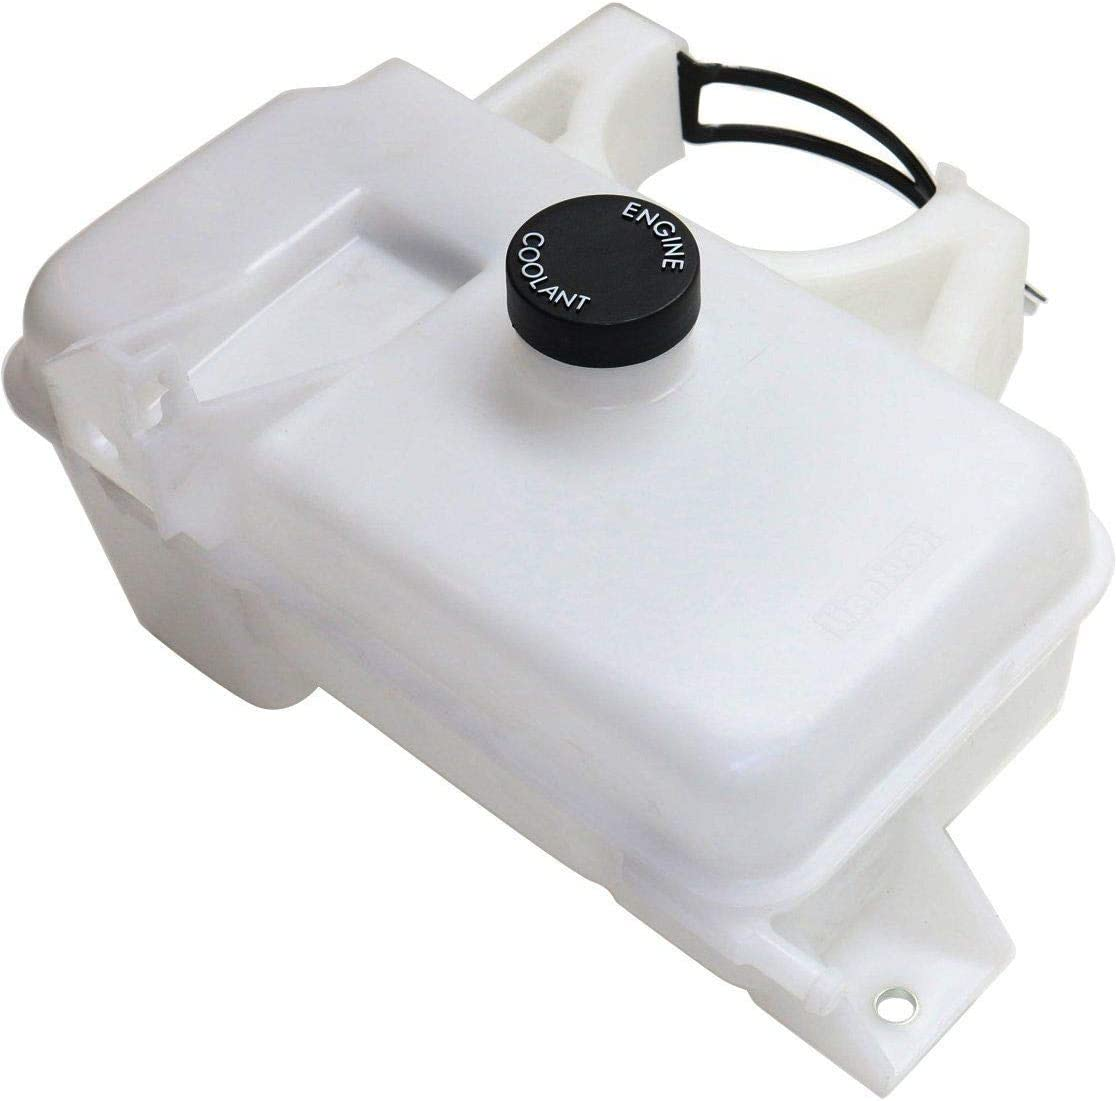 New Engine Coolant Recovery Tank For 2002-2009 Chevrolet Trailblazer /& GMC Envoy With Cap GM3014145 25780737 2005-2009 Saab 9-7x